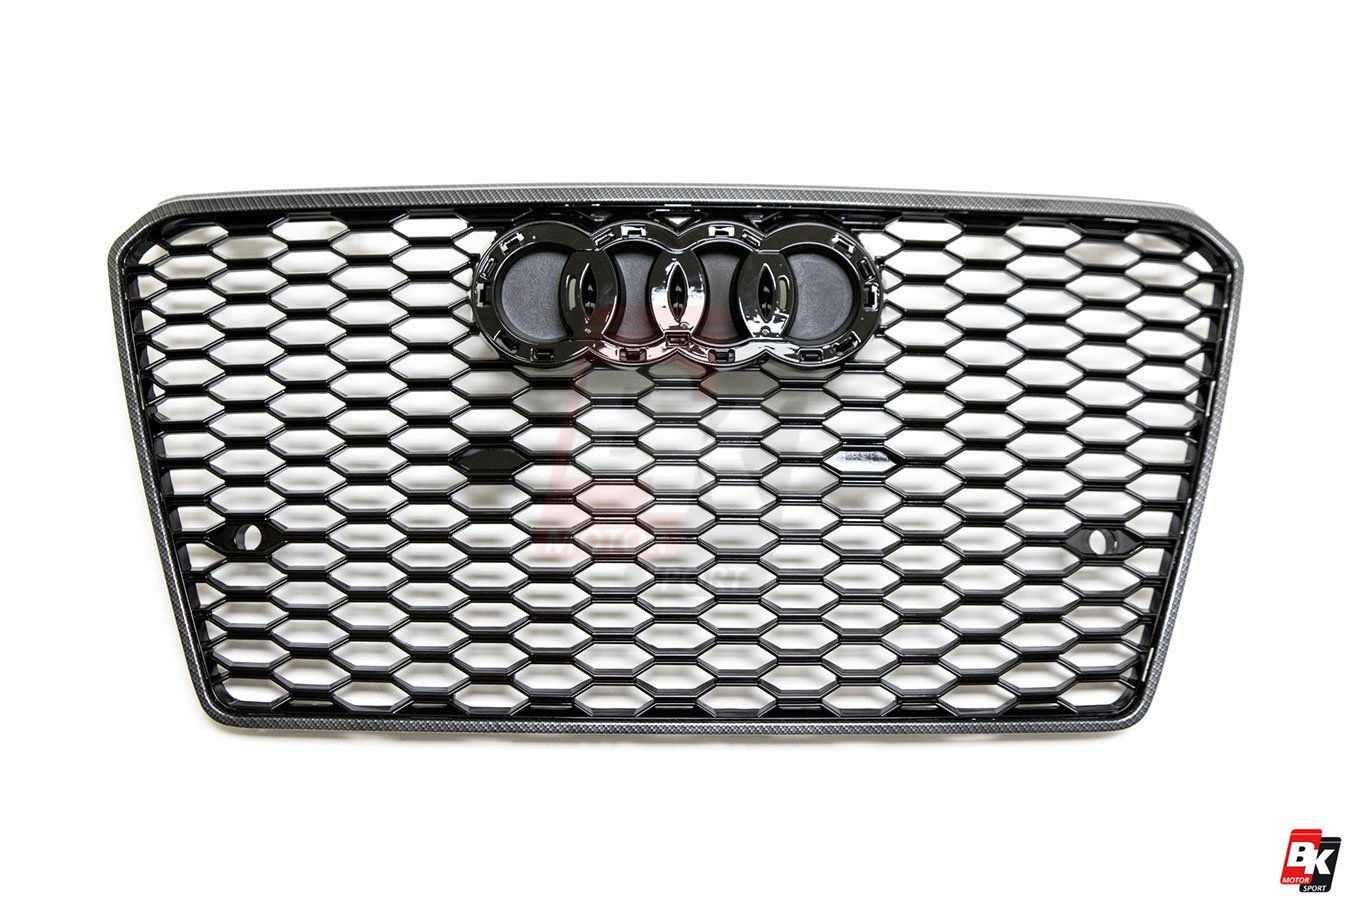 BKM Front Bumper Kit with Front Grille (RS Style), fits Audi A7/S7 C7.0